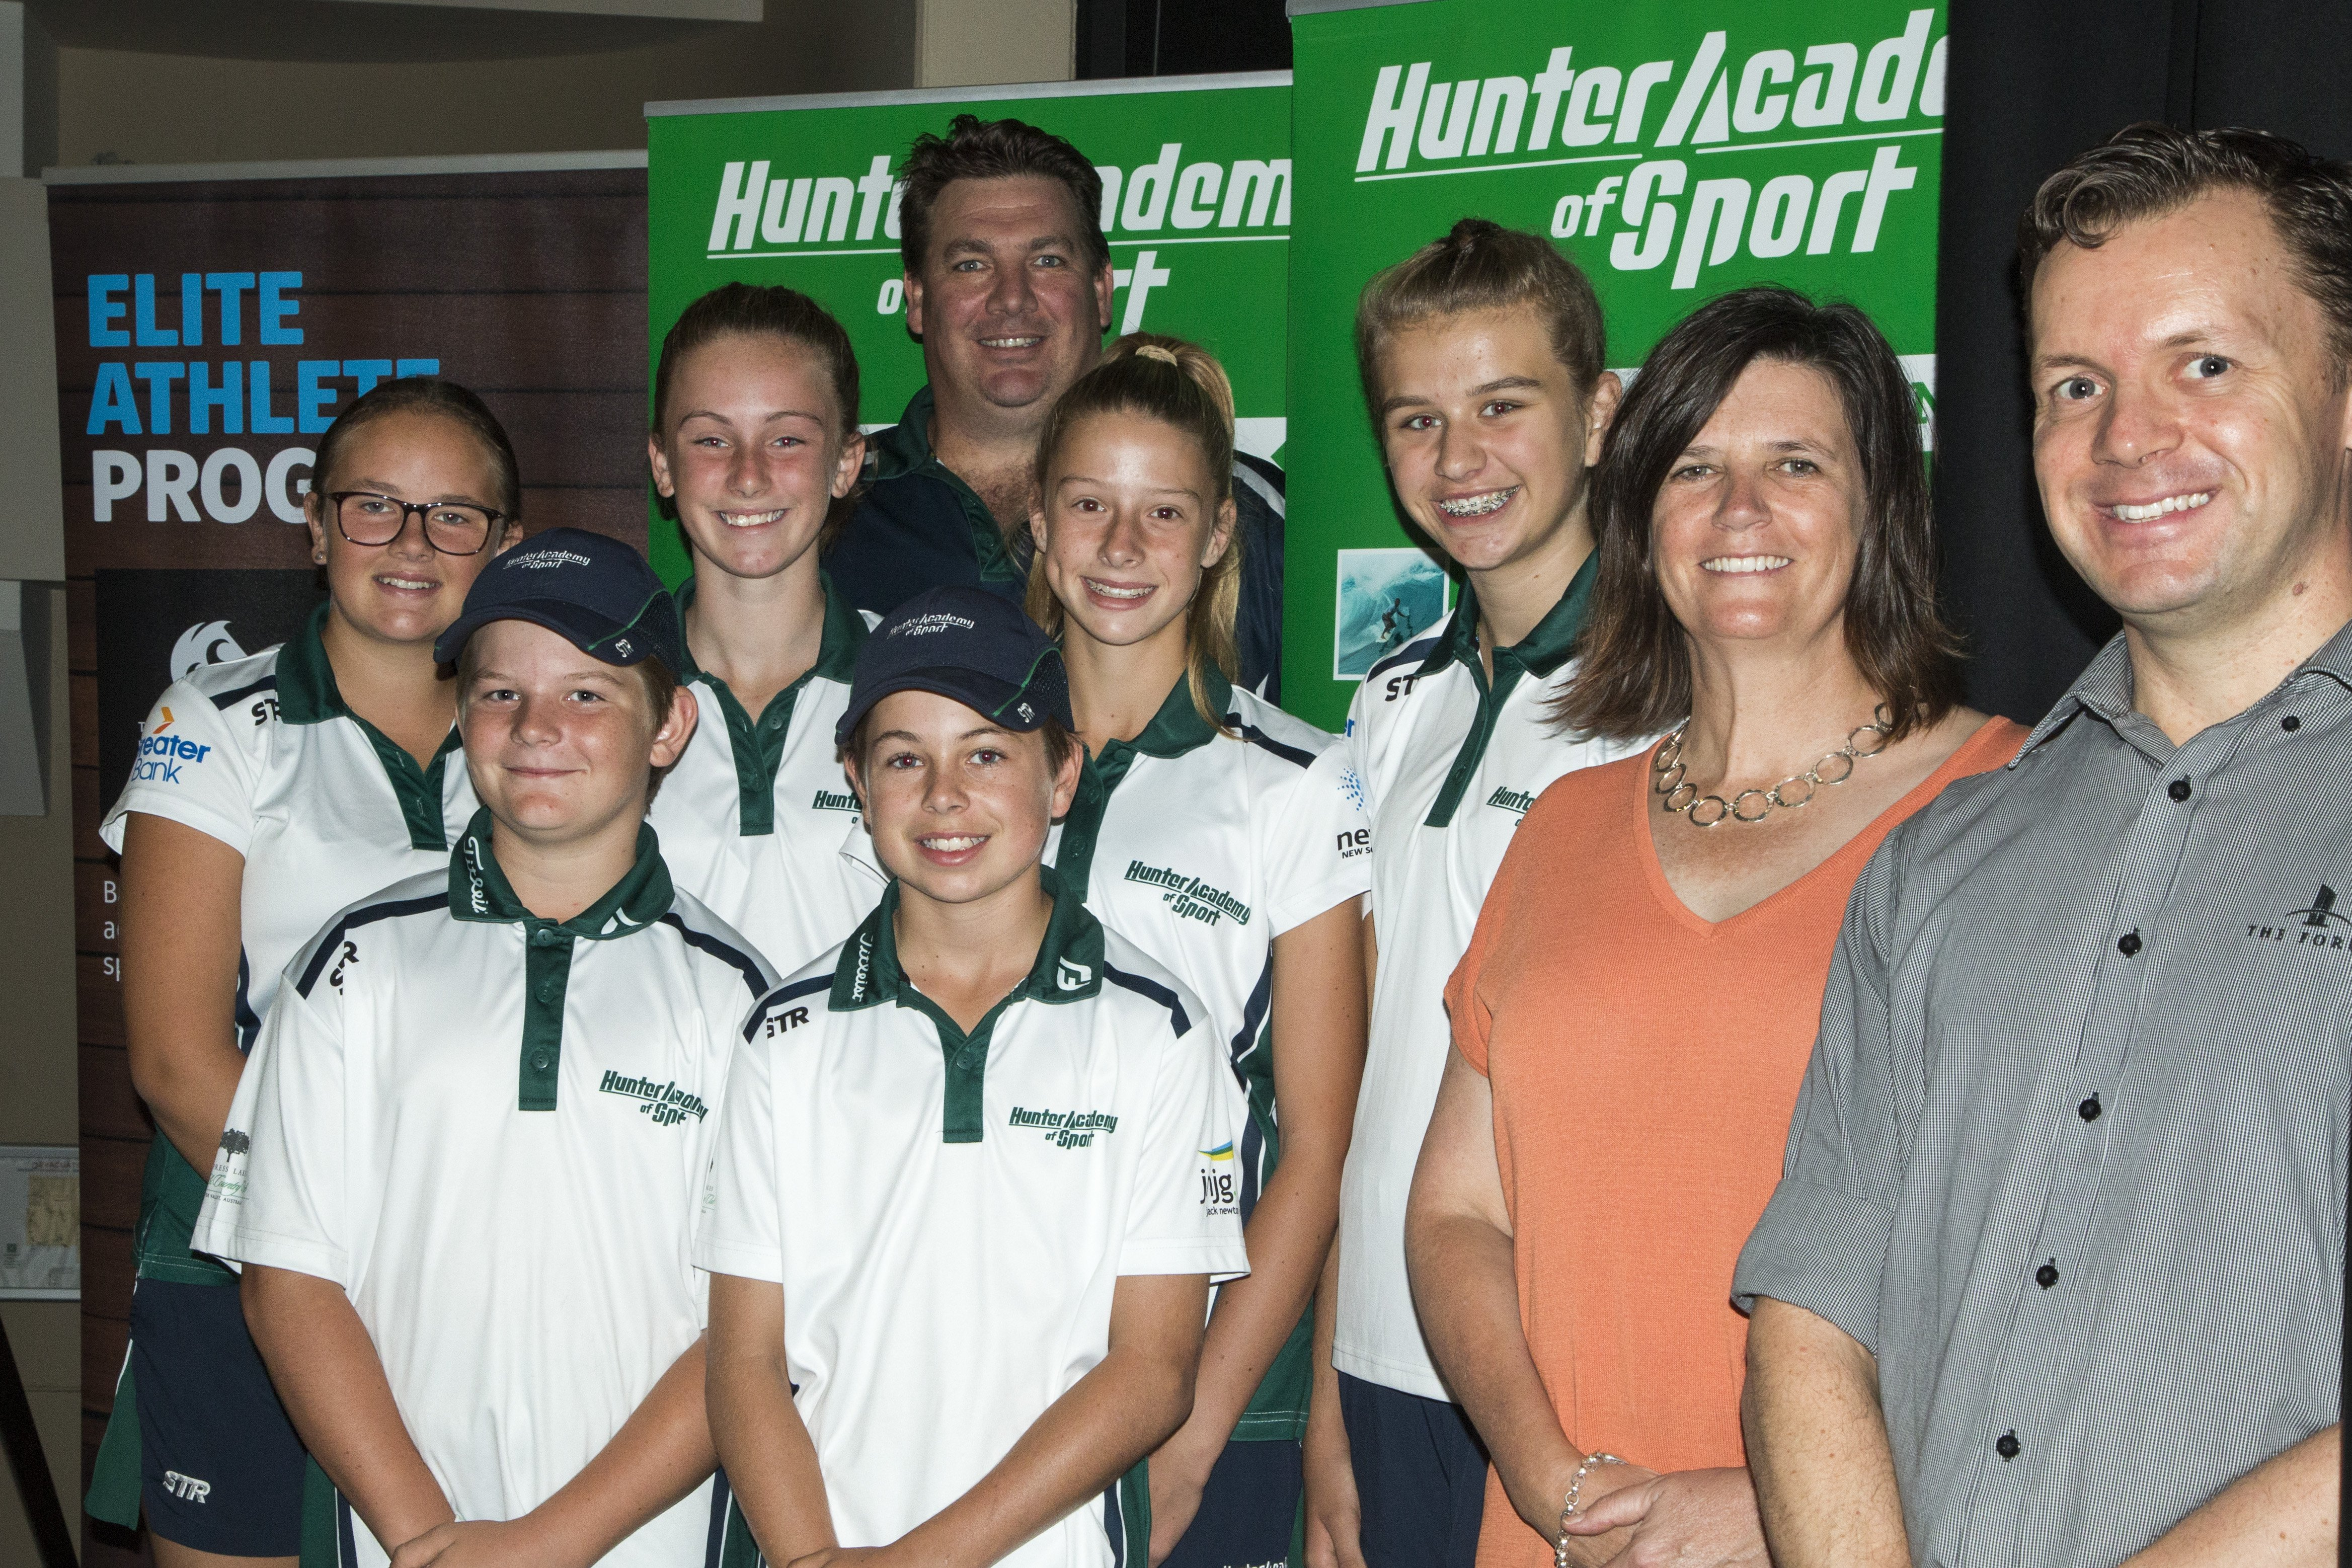 The Hunter and Central Coast Academies of Sport have announced a ground-breaking tri-partisan partnership with the University of Newcastle this weekend, with a launch held at the University's Griffith Duncan Theatre on Saturday 9th March.